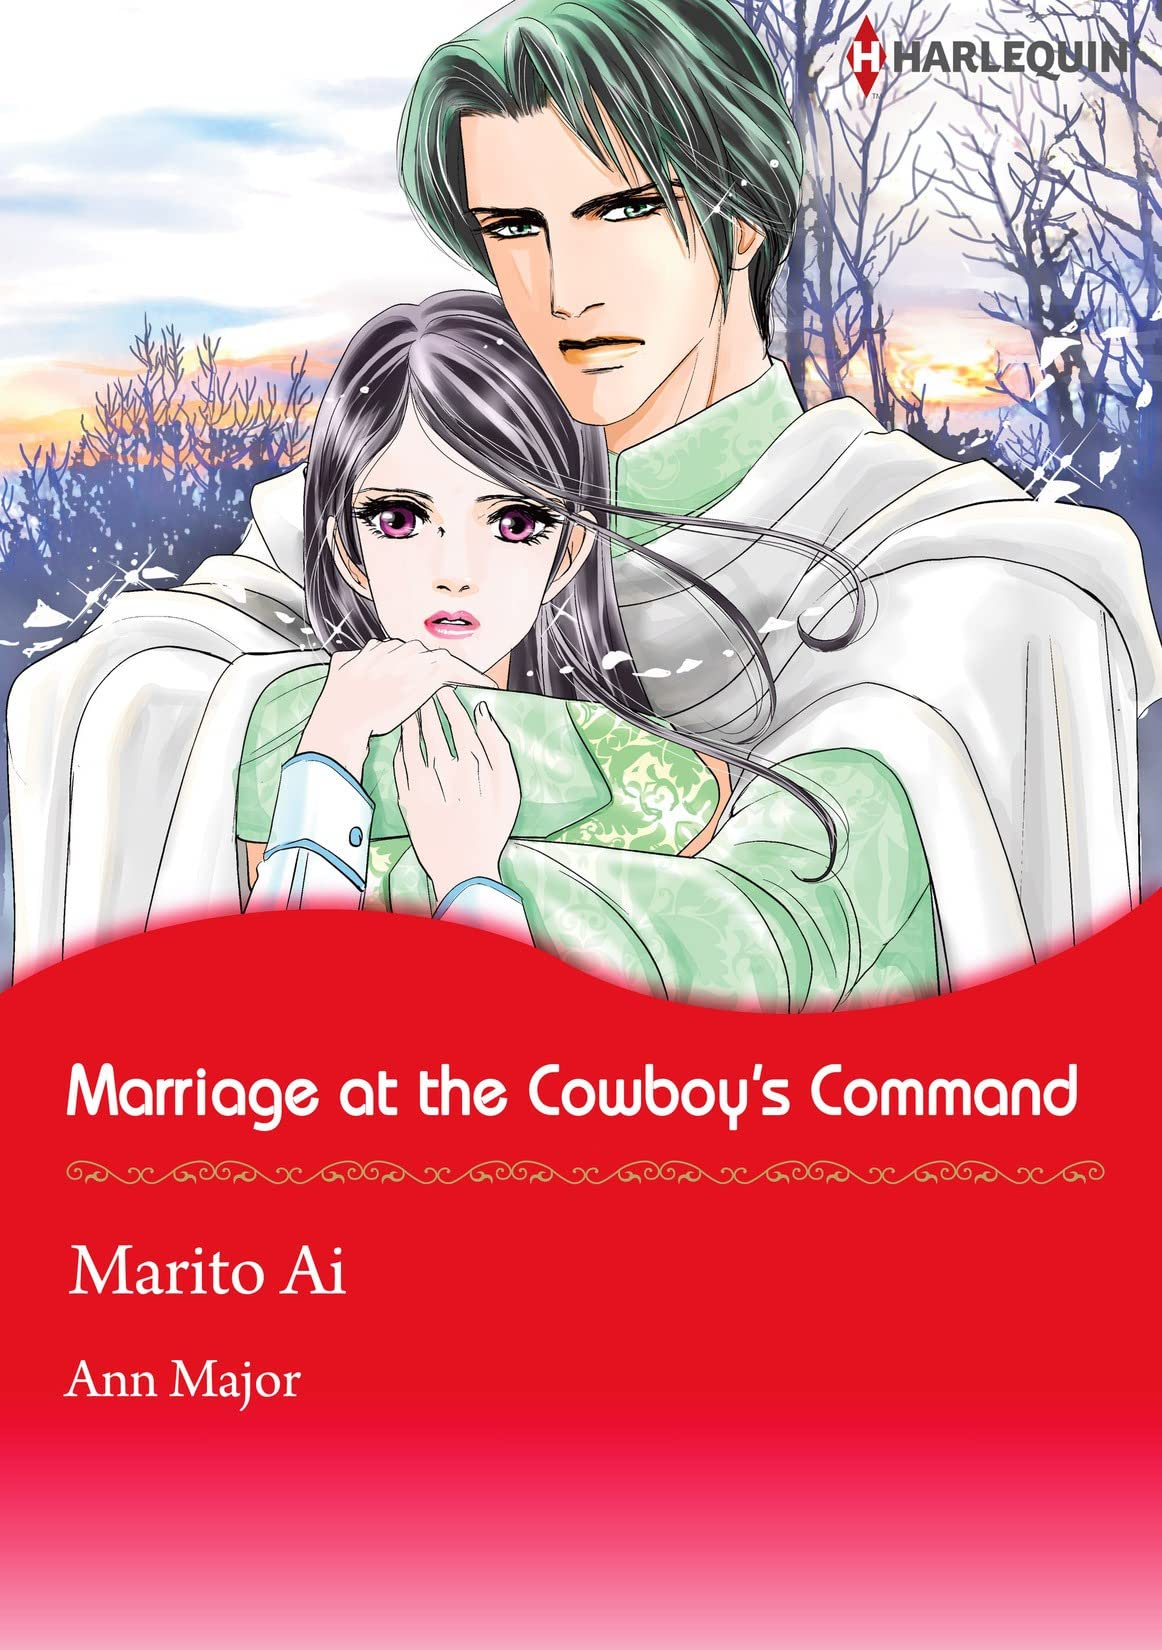 Marriage at the Cowboy's Command